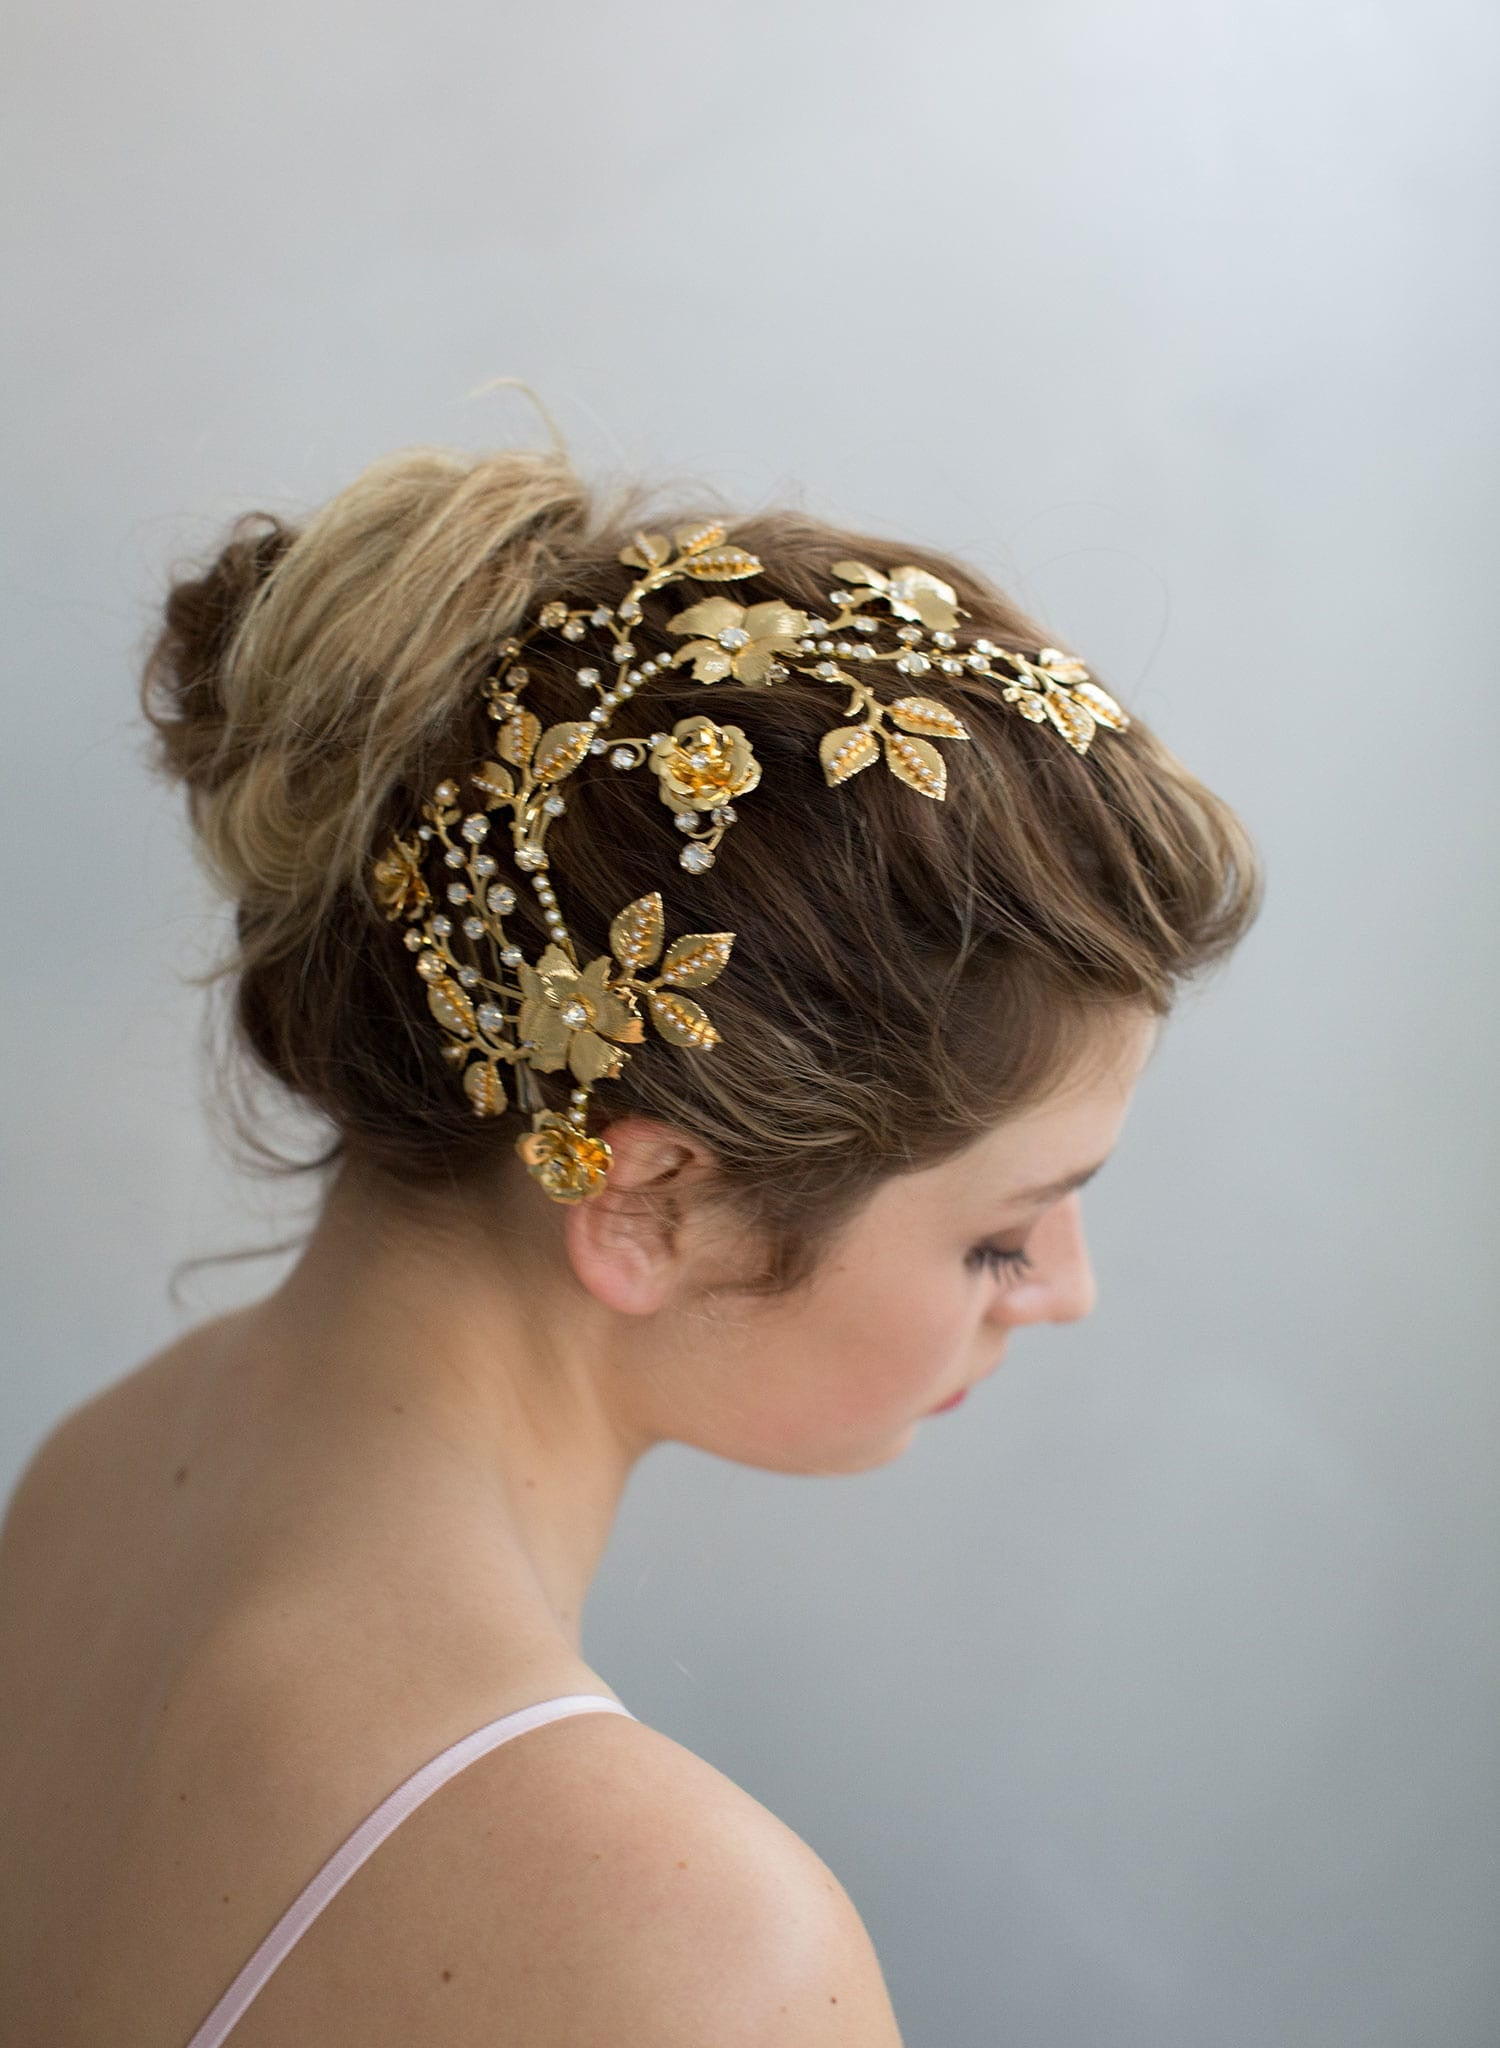 Br Bridal Headpieces Twigs And Honey -  dramatic bridal headpiece golden floral headpiece hair adornments twigs and honey